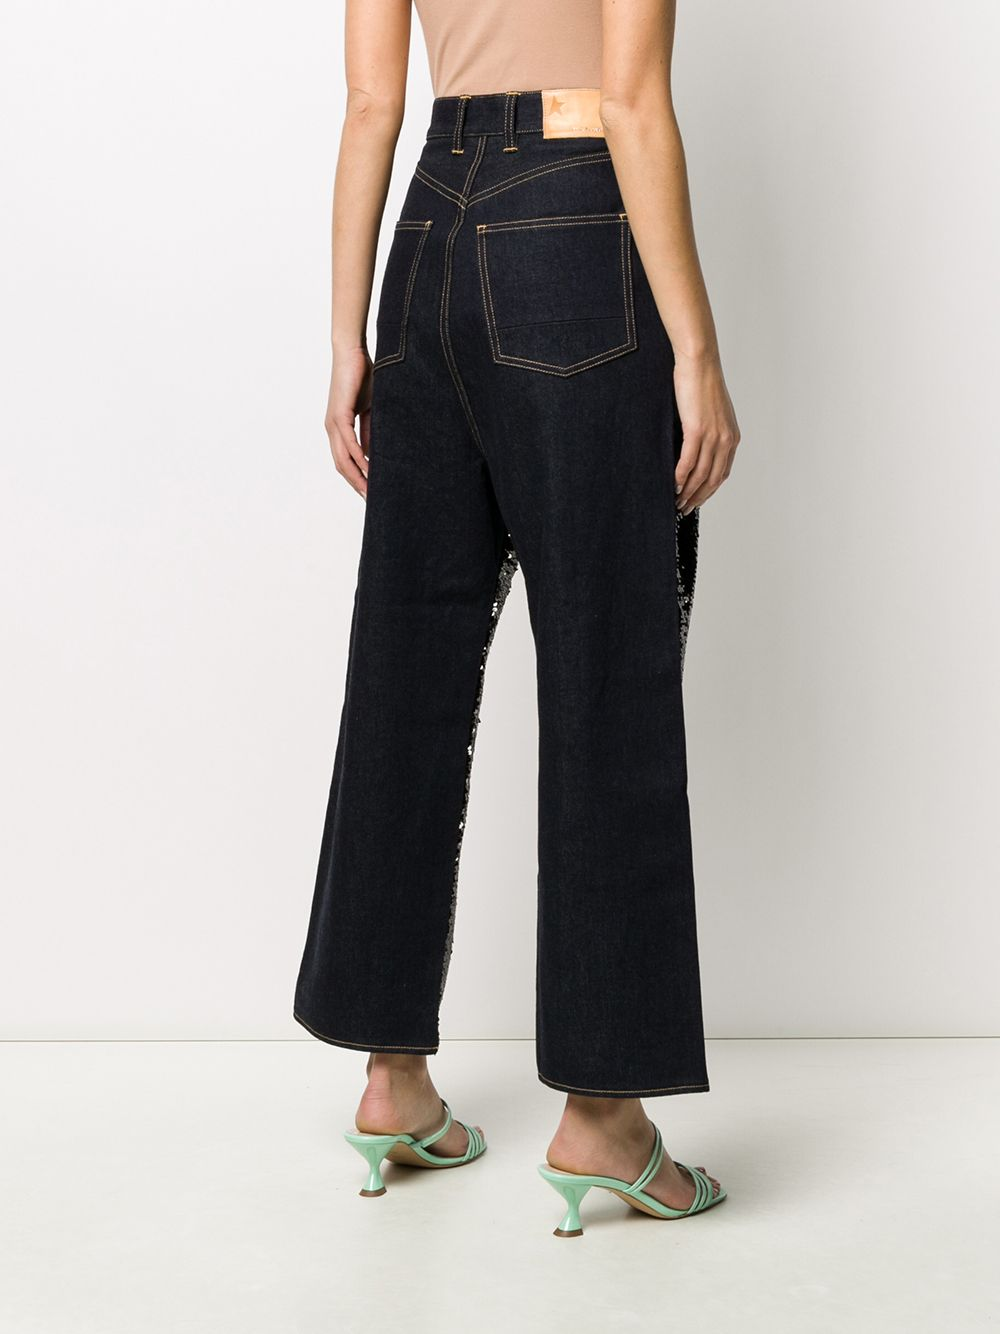 GOLDEN GOOSE DELUXE BRAND Jeans GOLDEN GOOSE | Jeans | G36WP084A1